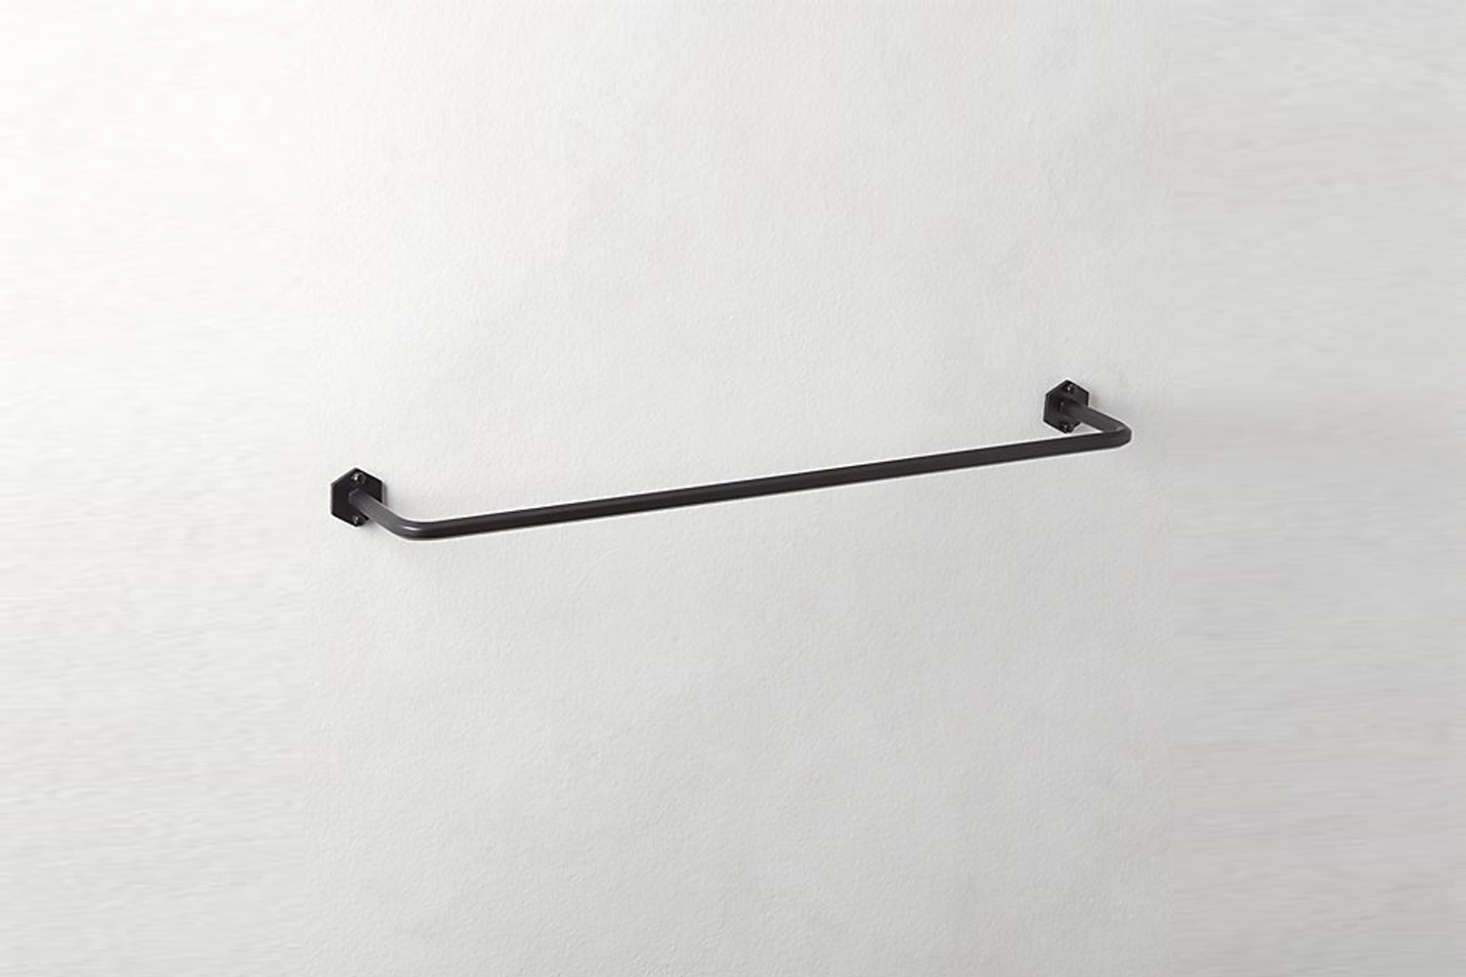 The Hex Matte Black Towel Bars range from $34.39 to $54.95 at CB